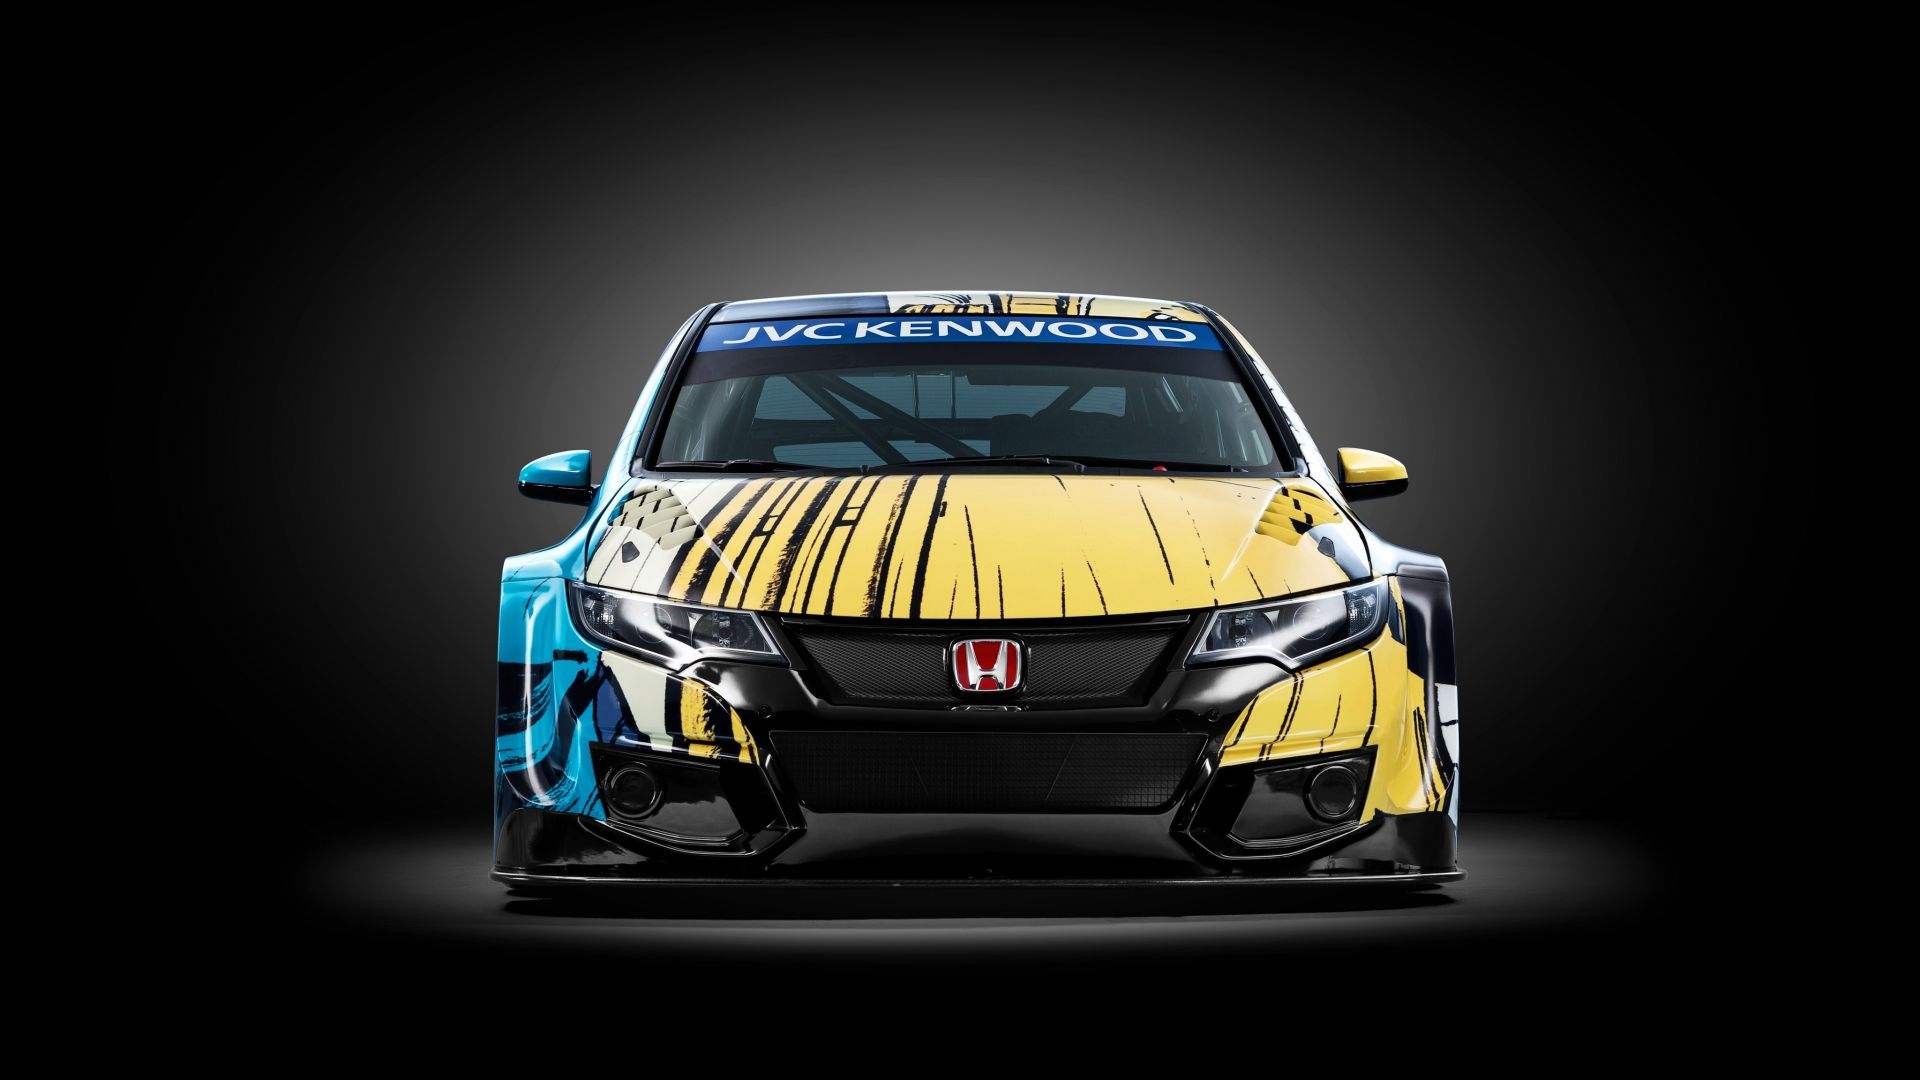 Хонда цивик, арт Джин Гратон, Honda Civic WTCC, Art Car Jean Graton